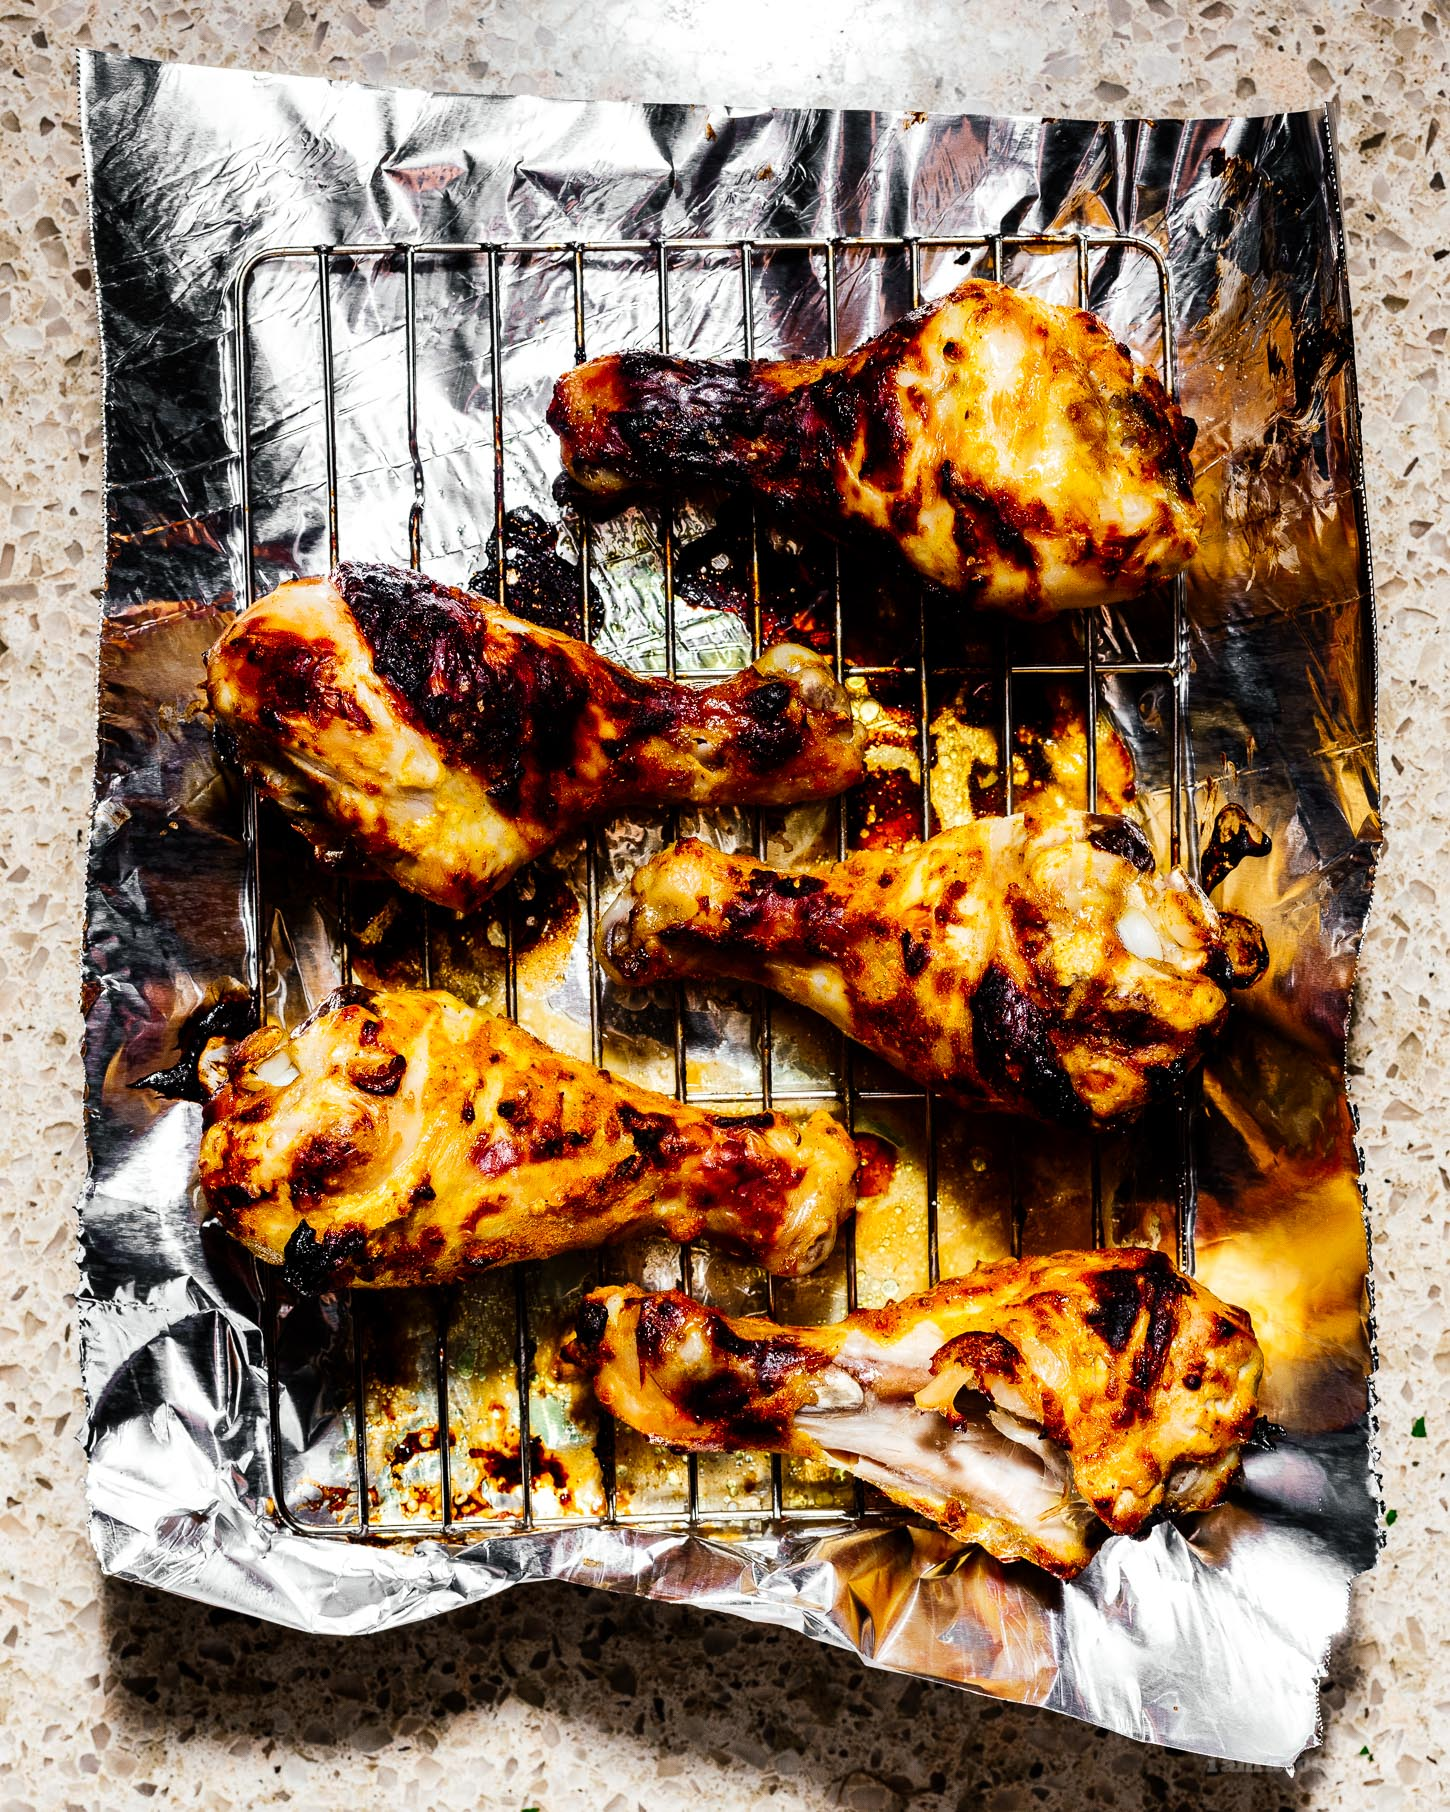 The Easiest 8 Ingredient Oven Broiled Tandoori Chicken Recipe | www.iamafoodblog.com